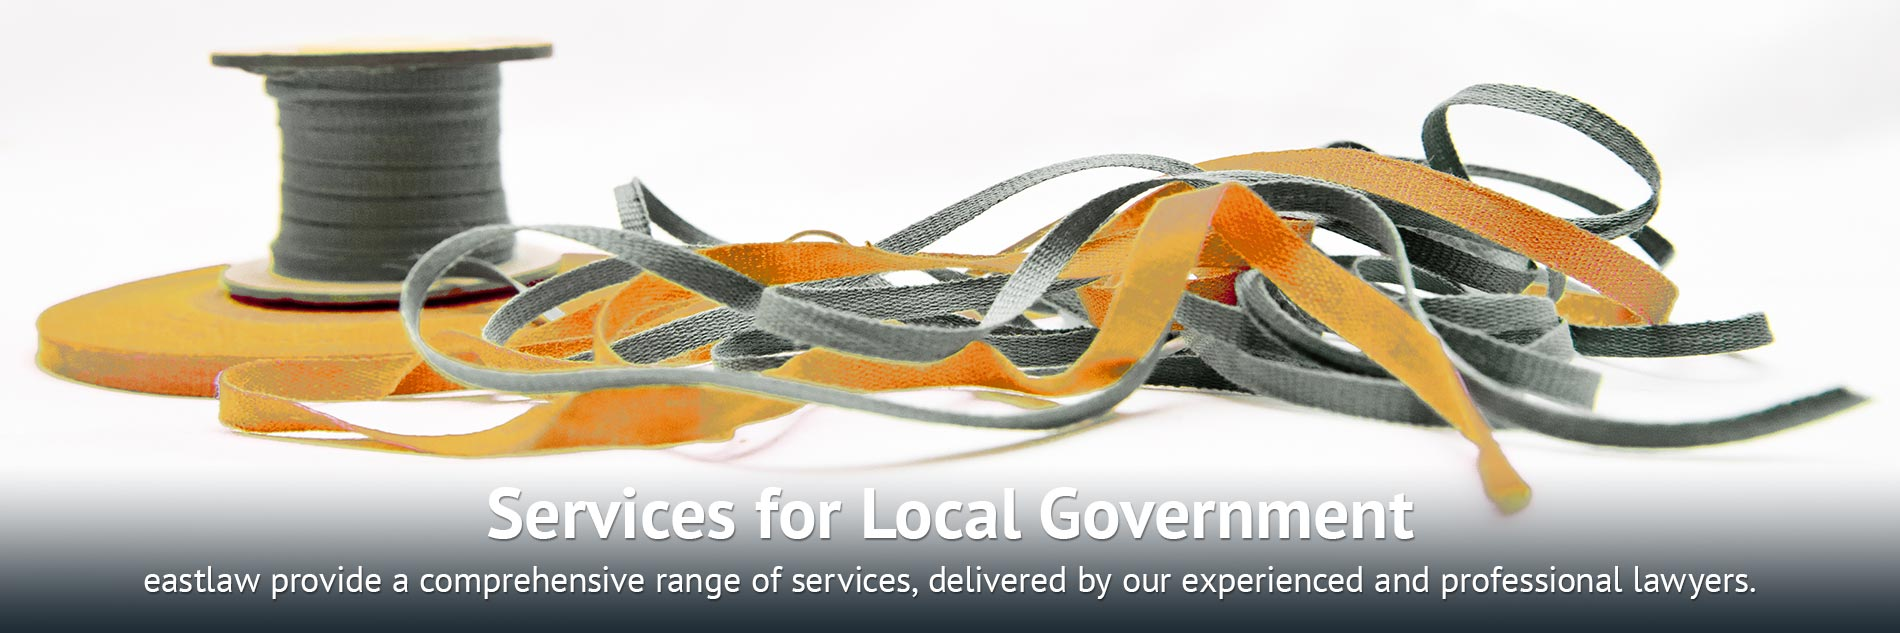 Services for Local Government: eastlaw provide a comprehensive range of services, delivered by our experienced and professional lawyers.